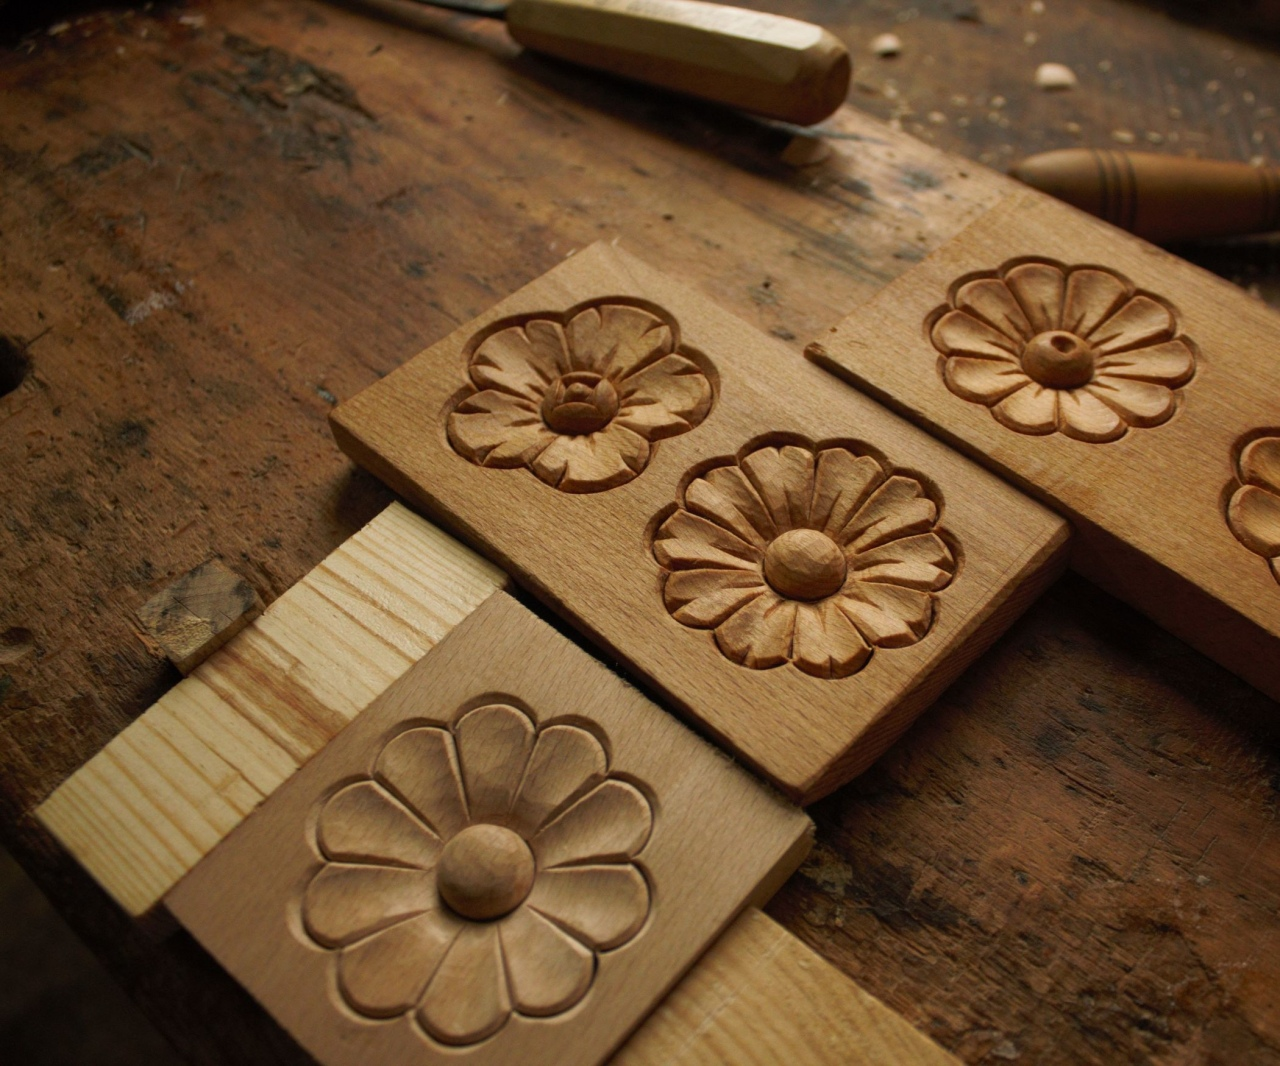 Easy sculpture ideas for kids simple wood carving flower rosette